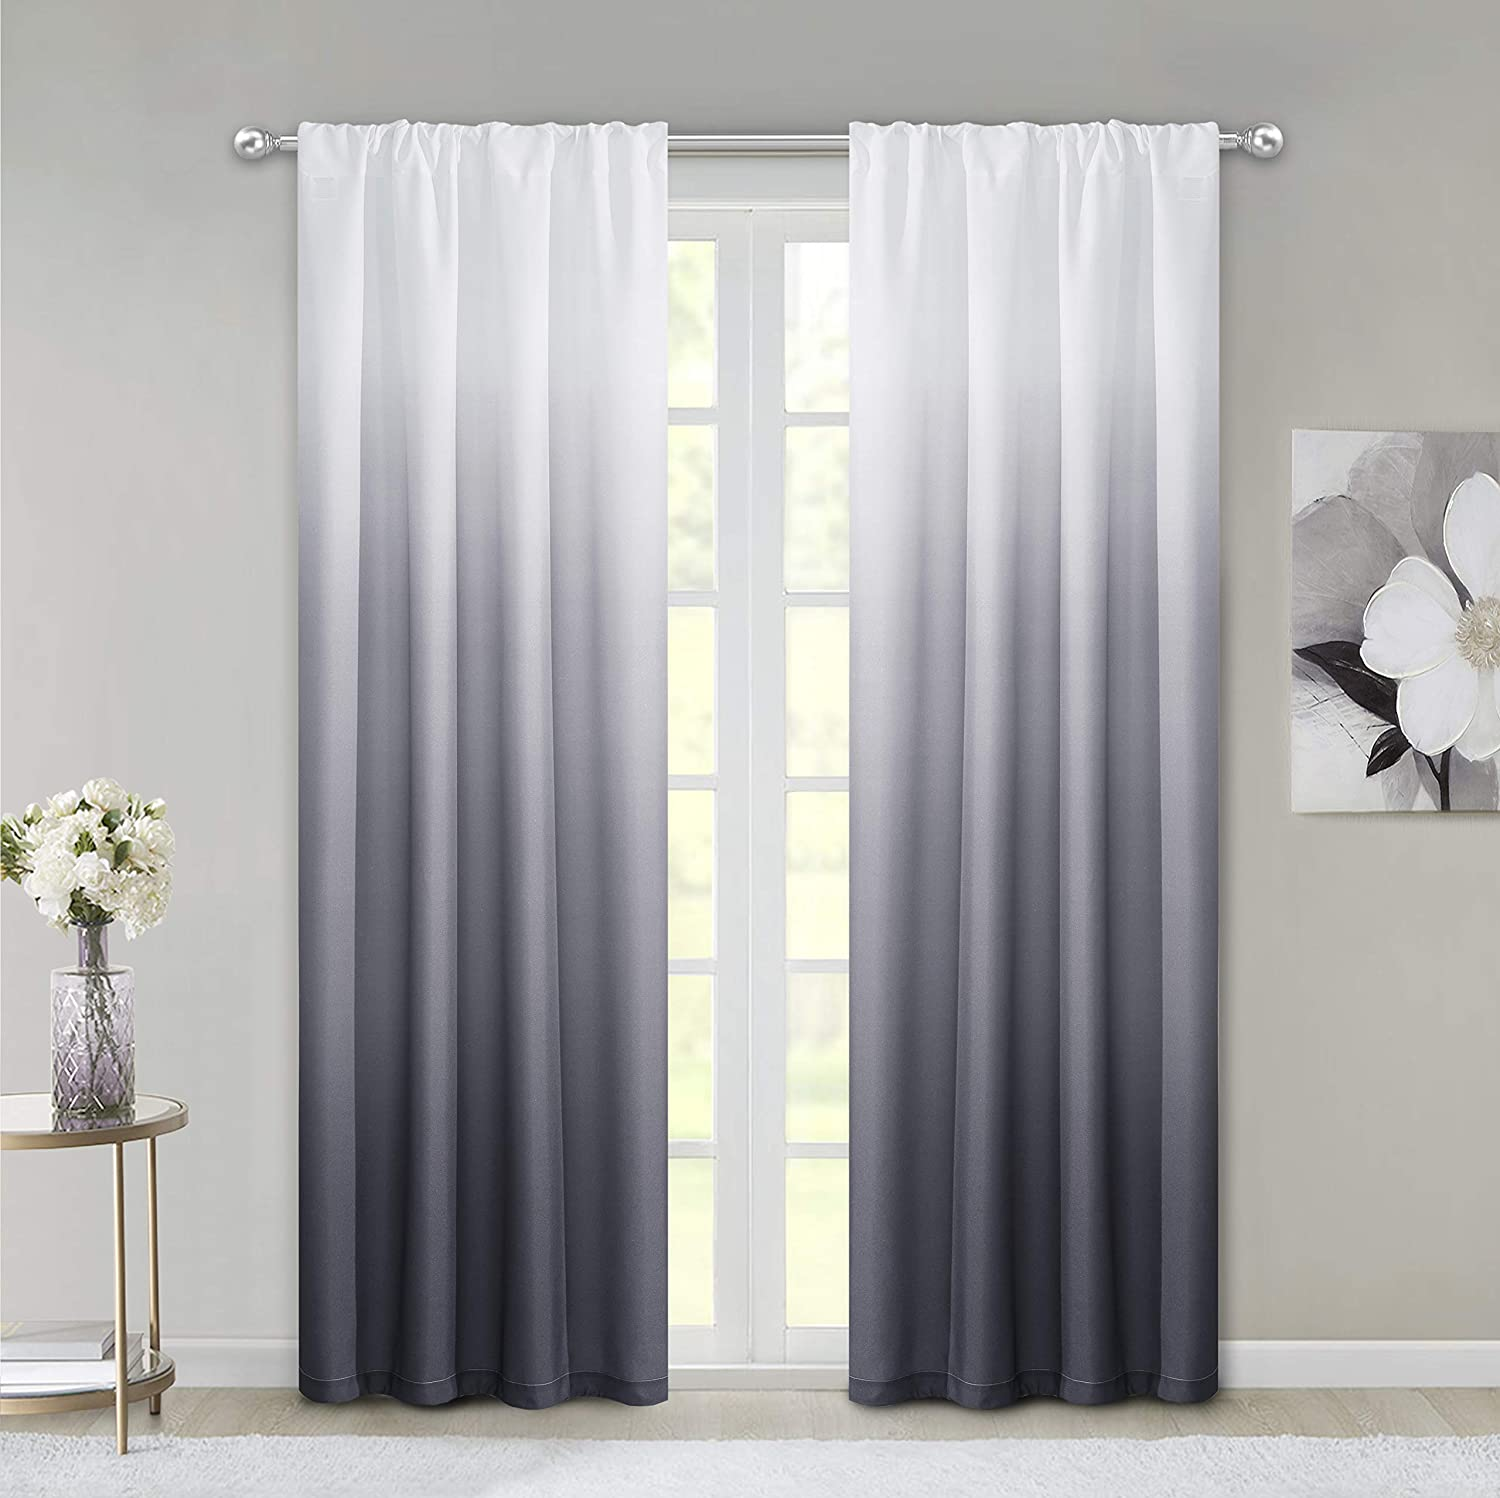 "Dainty Home Ombre Woven Shades of Color Rod Pocket Curtain Panel Pair Complete Set of 2, 40"" wide x 84"" long each, Gradient White to Black"